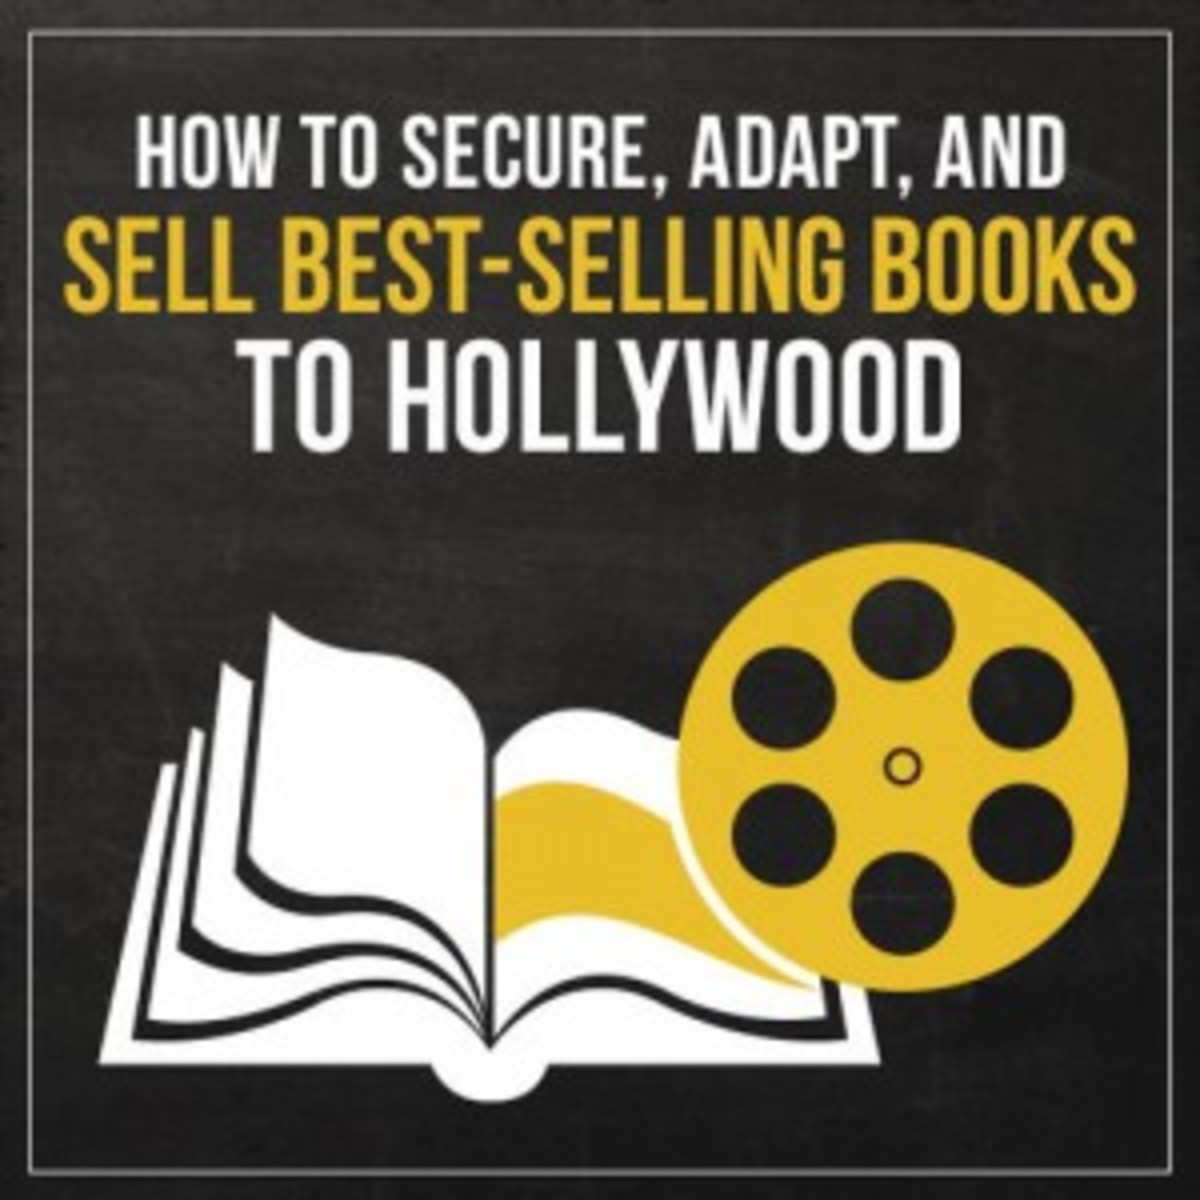 ws-booktohollywood-500_medium